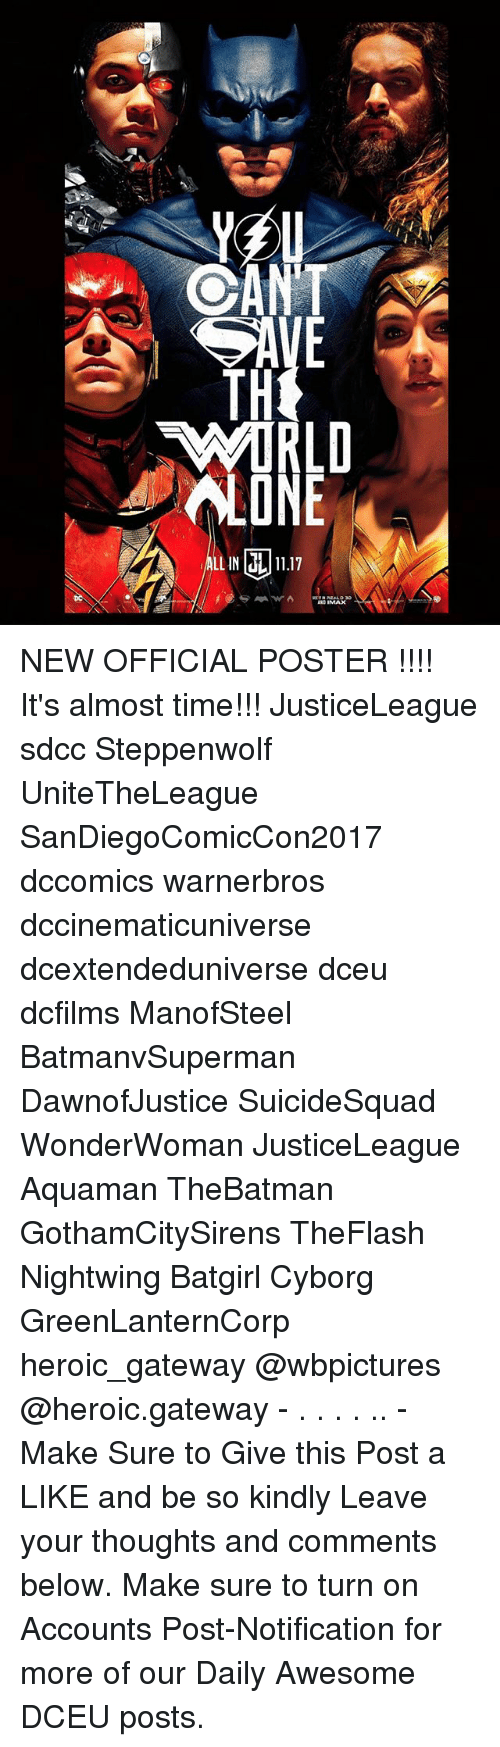 Memes, Gateway, and Time: E LE NEW OFFICIAL POSTER !!!! It's almost time!!! JusticeLeague sdcc Steppenwolf UniteTheLeague SanDiegoComicCon2017 dccomics warnerbros dccinematicuniverse dcextendeduniverse dceu dcfilms ManofSteel BatmanvSuperman DawnofJustice SuicideSquad WonderWoman JusticeLeague Aquaman TheBatman GothamCitySirens TheFlash Nightwing Batgirl Cyborg GreenLanternCorp heroic_gateway @wbpictures @heroic.gateway - . . . . .. -Make Sure to Give this Post a LIKE and be so kindly Leave your thoughts and comments below. Make sure to turn on Accounts Post-Notification for more of our Daily Awesome DCEU posts.